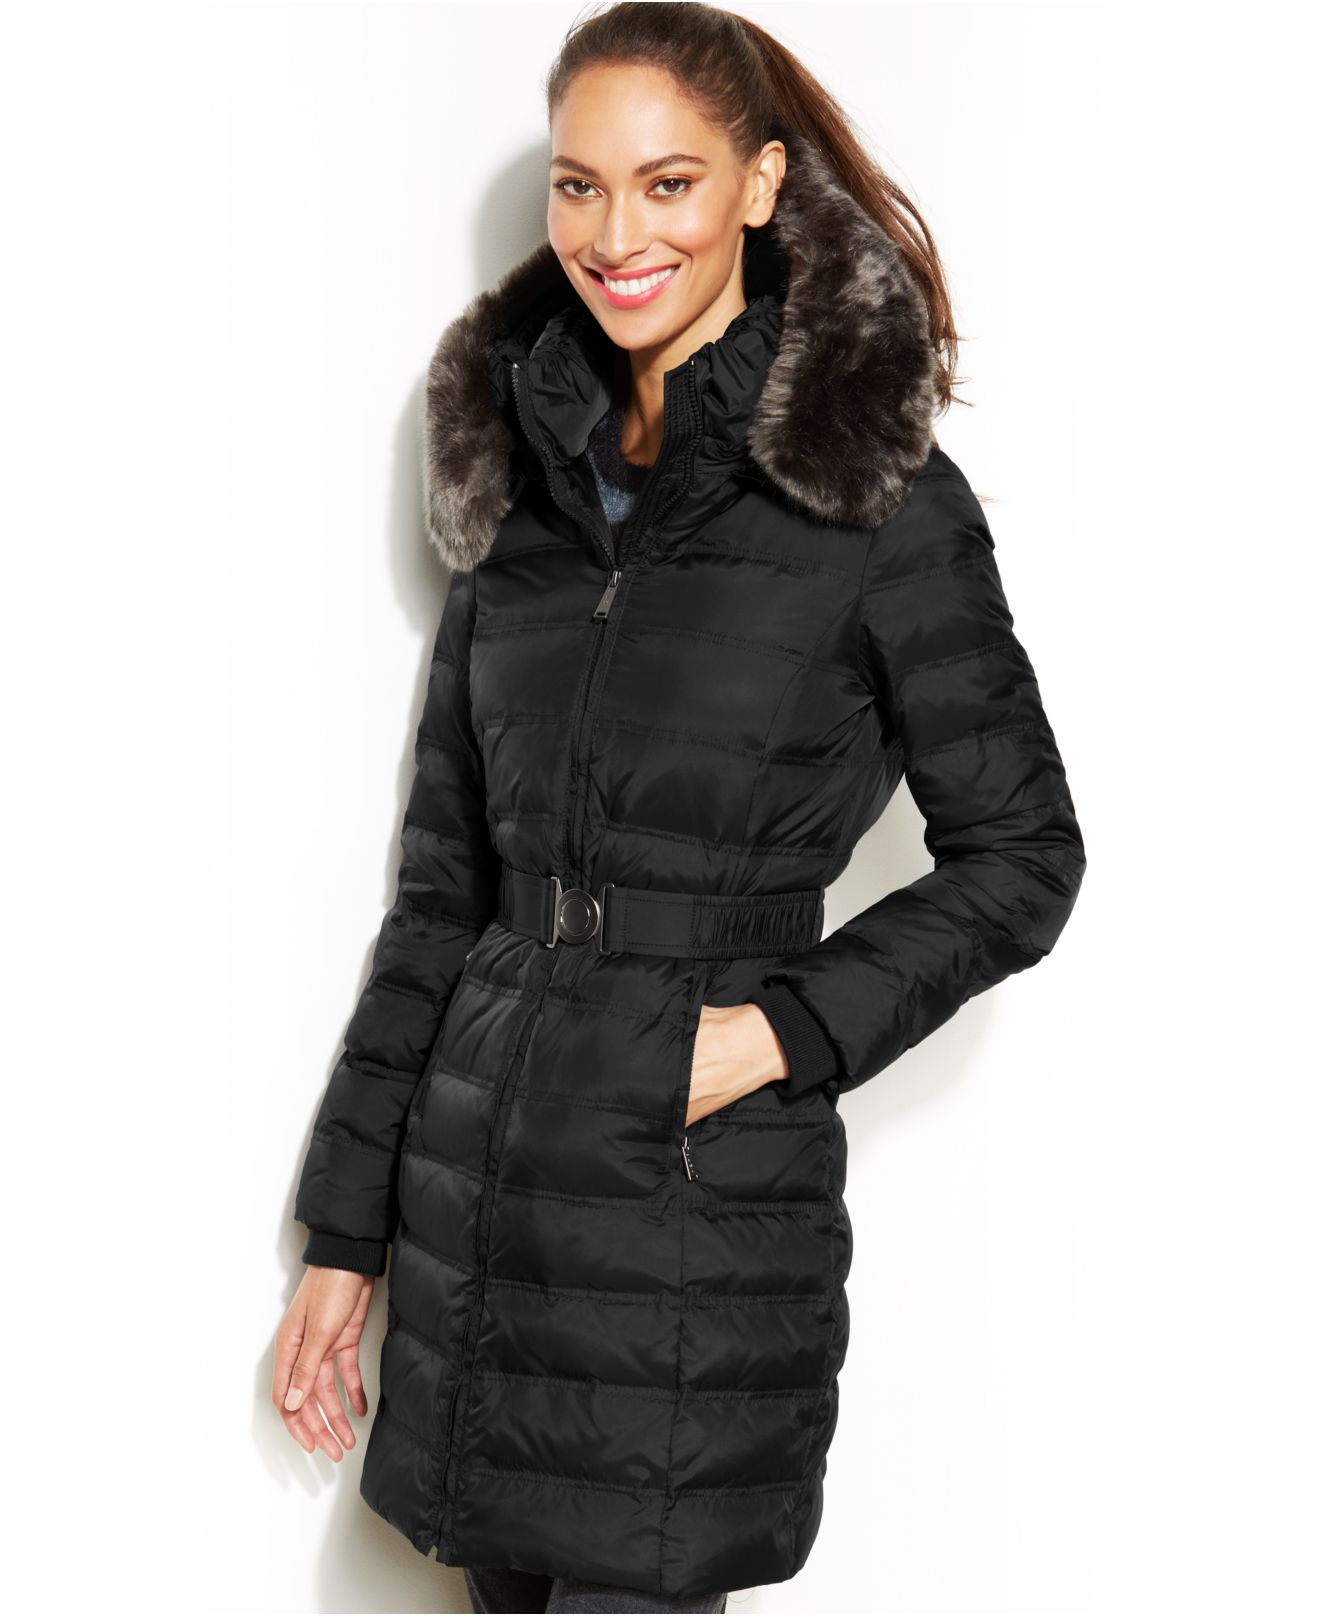 Belted Down Coat With Hood - JacketIn